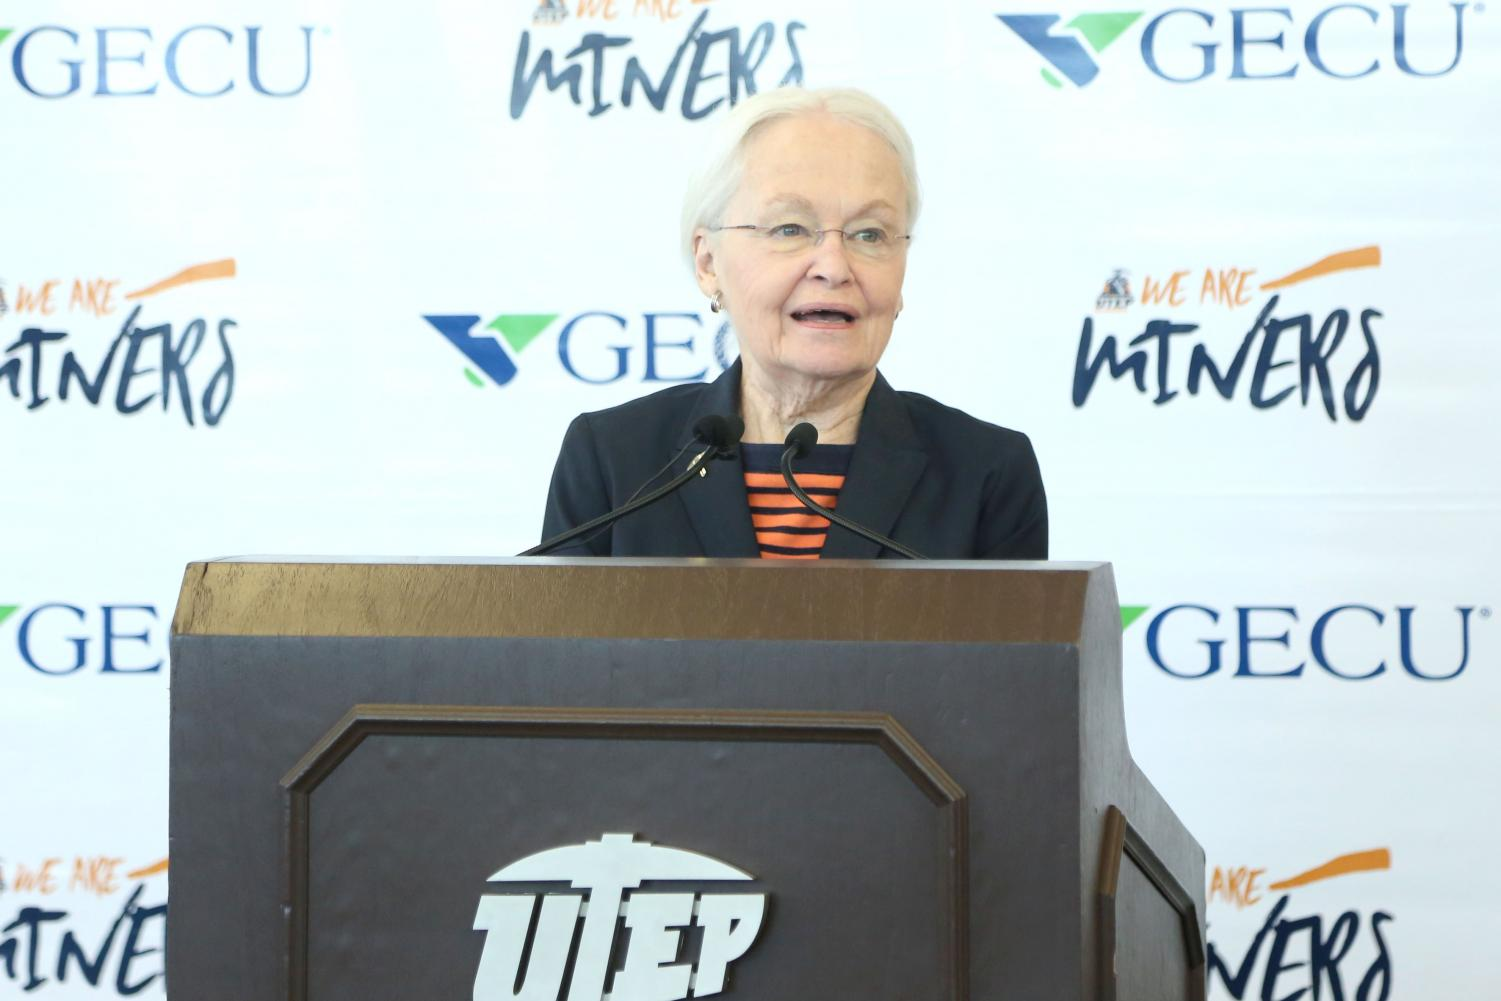 In May President Natalicio announced she will be retiring after 30 years as UTEP president.